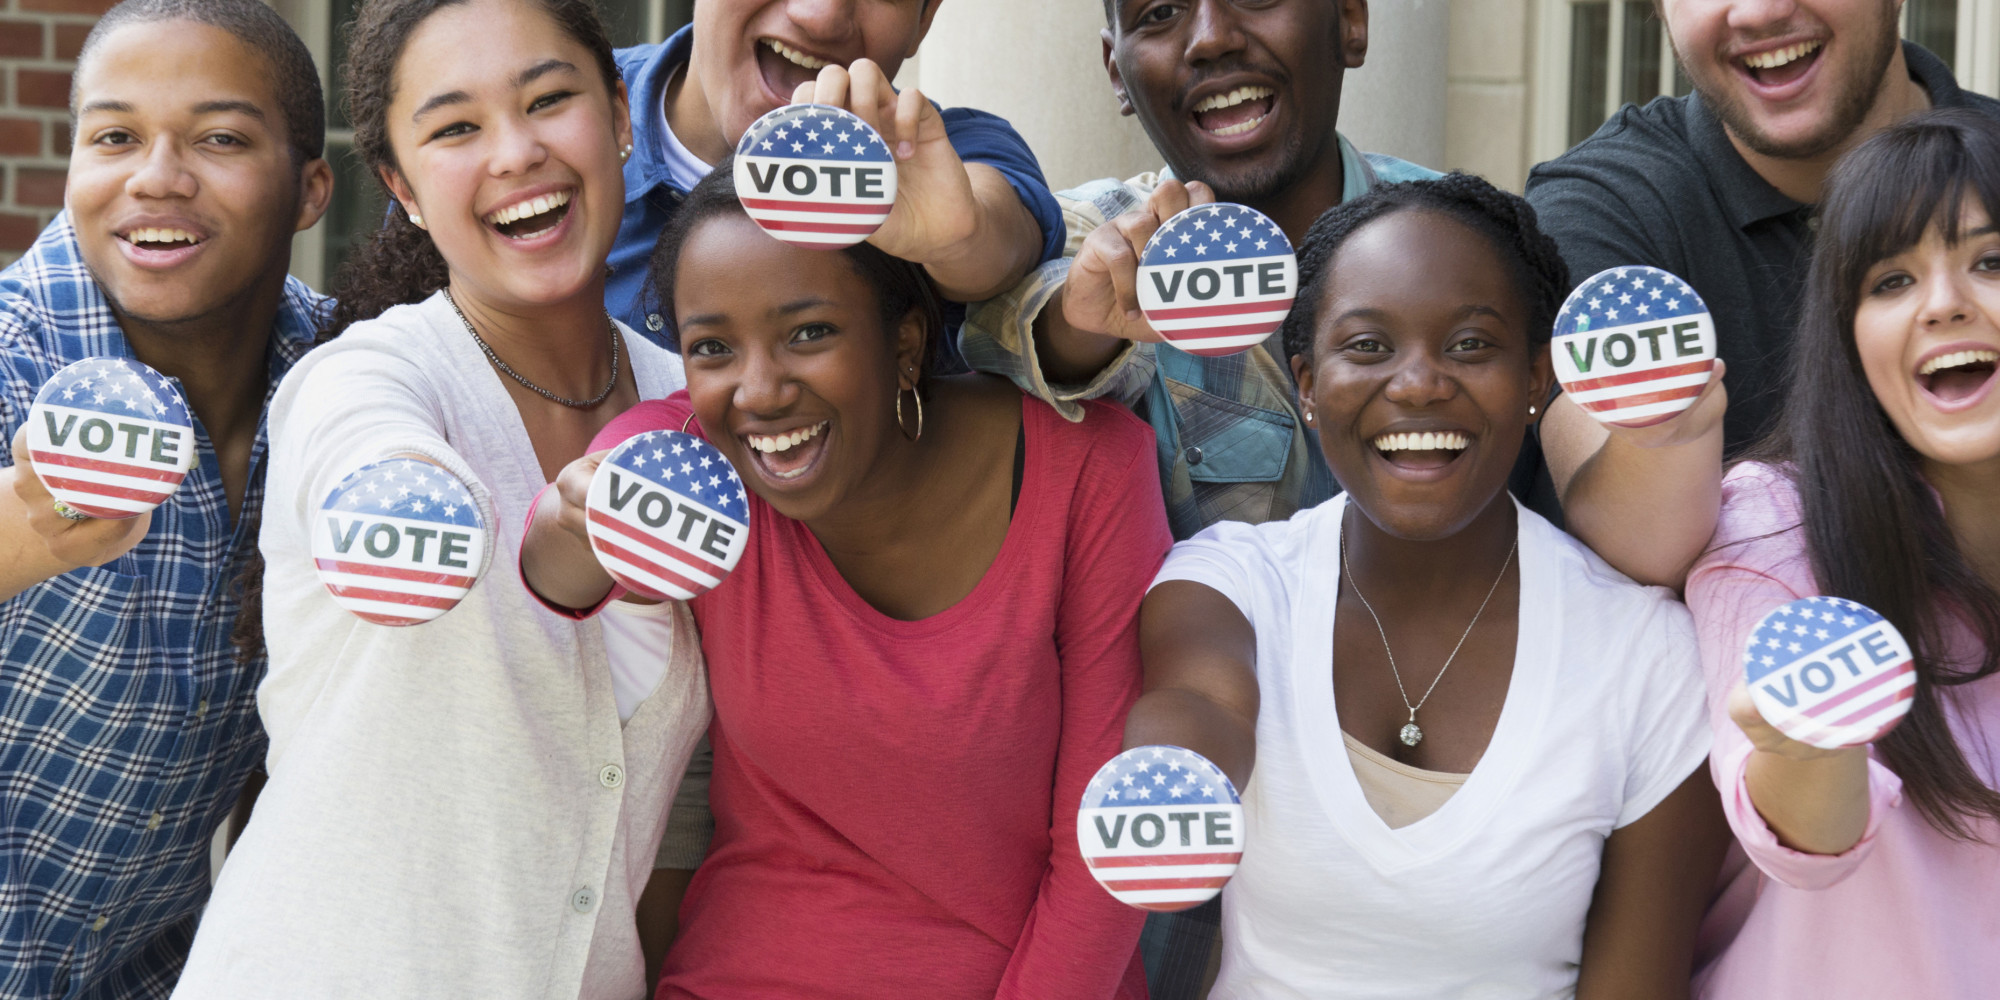 How to Get More Young People Involved in Politics